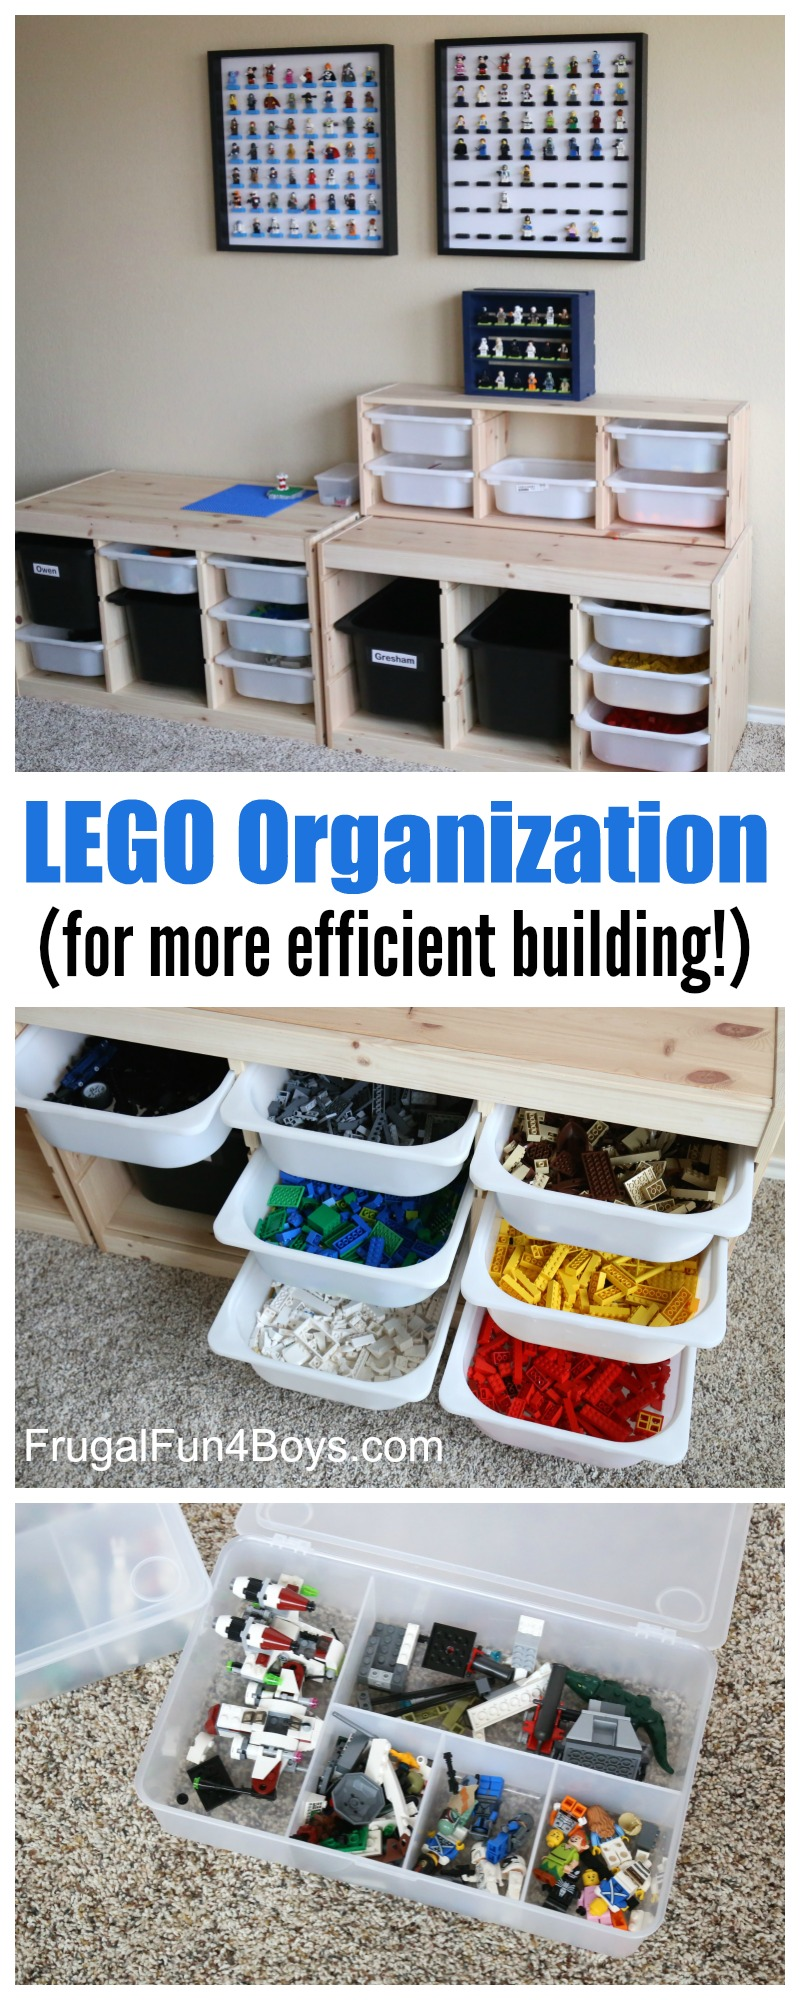 LEGO Storage and Organization for More Efficient Building - Frugal Fun For Boys and Girls